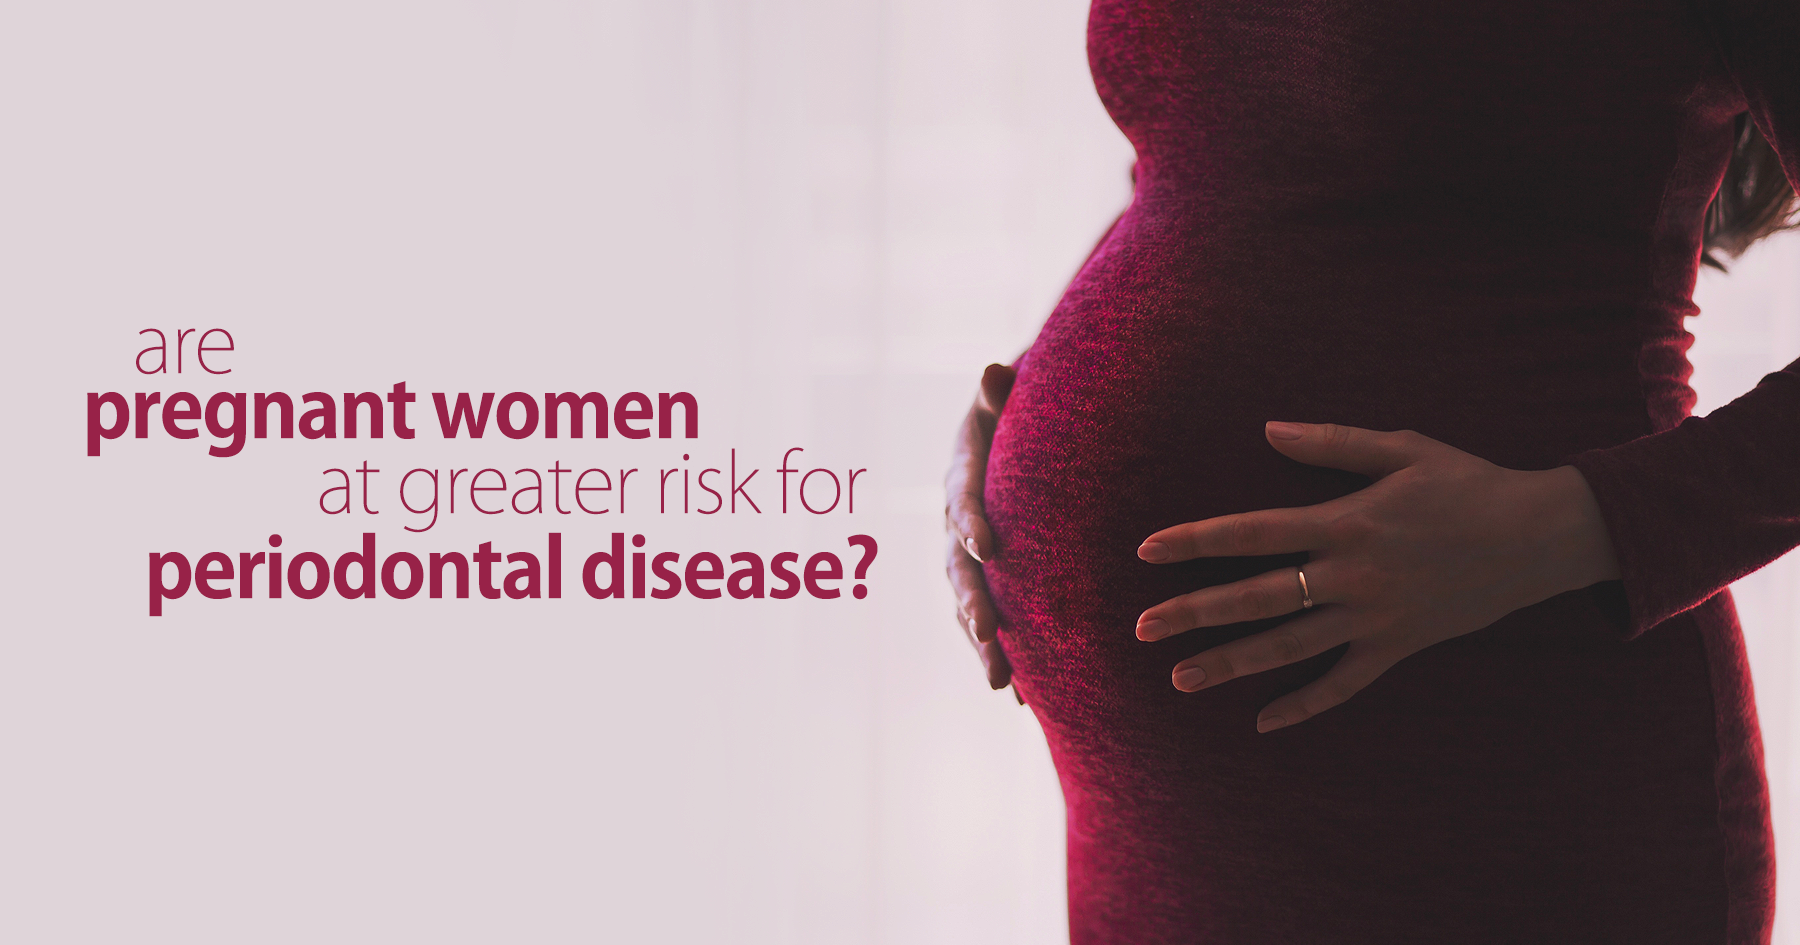 Pregnancy and Periodontal Disease